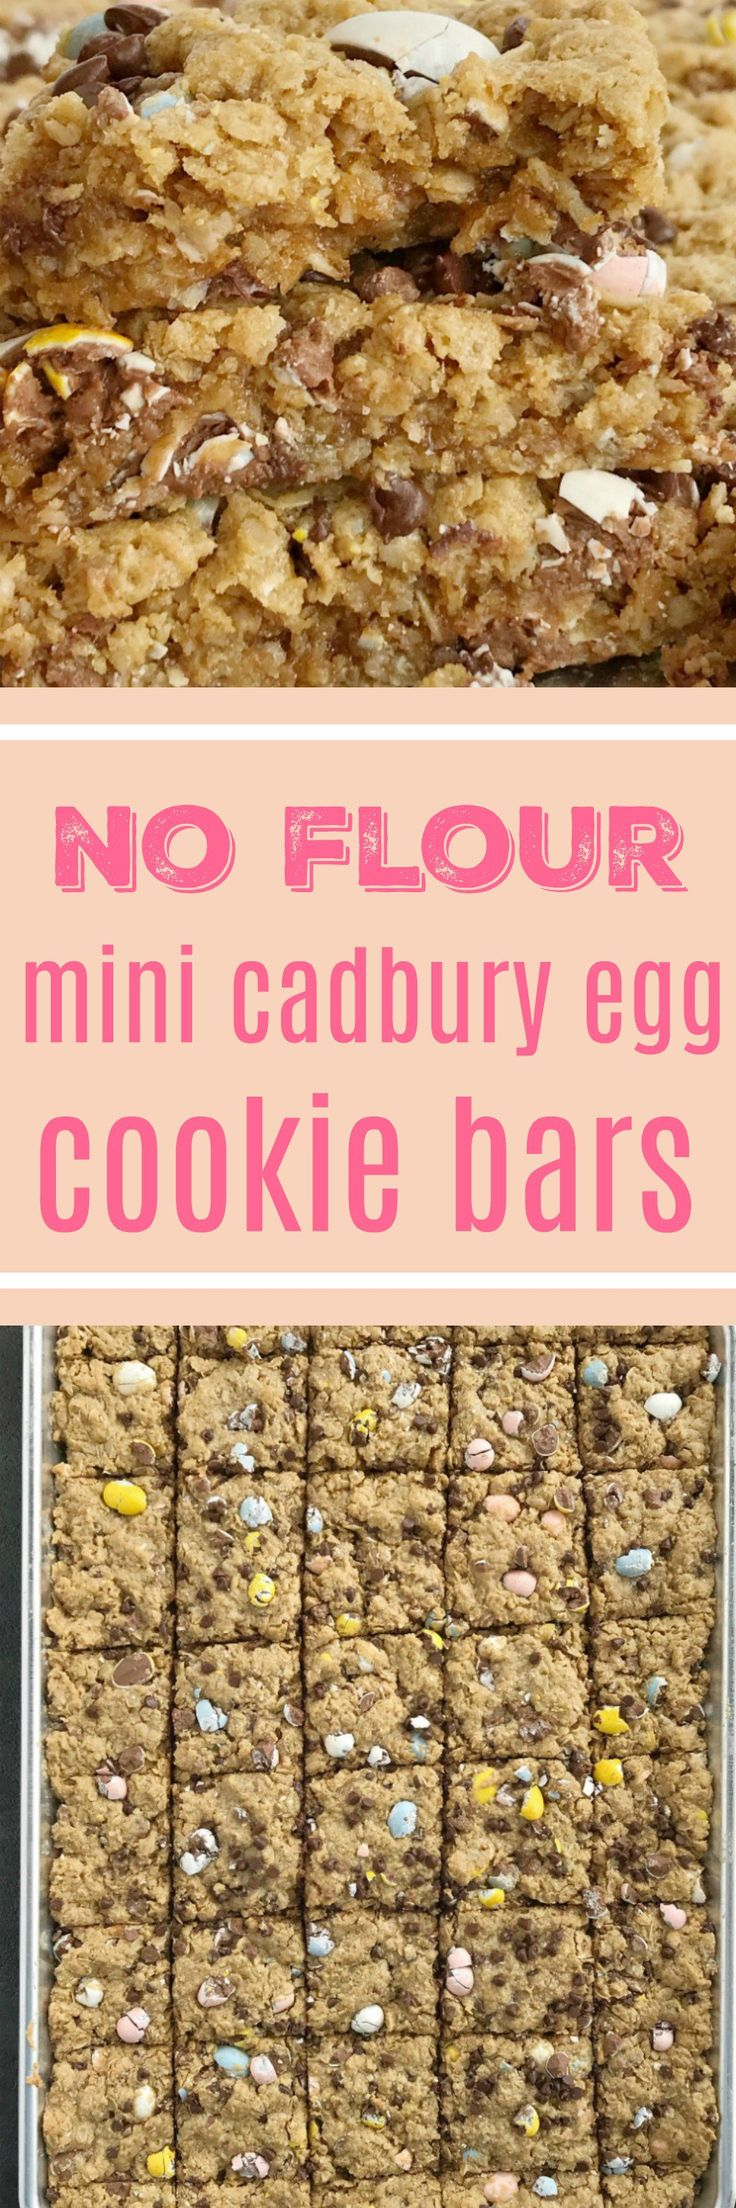 {no flour, gluten-free} Mini Cadbury Egg Cookie Bars | No flour mini Cadbury egg cookie bars are the best way to celebrate Easter! These gluten-free, no flour cookie bars are loaded with oats, peanut butter, chocolate, and an entire bag of mini Cadbury eggs. You must try this easy dessert that's made in a cookie sheet so it's perfect for a crowd or for freezing | #easyrecipes #easter #easterrecipes #easterdessertrecipes #cadburyeggs